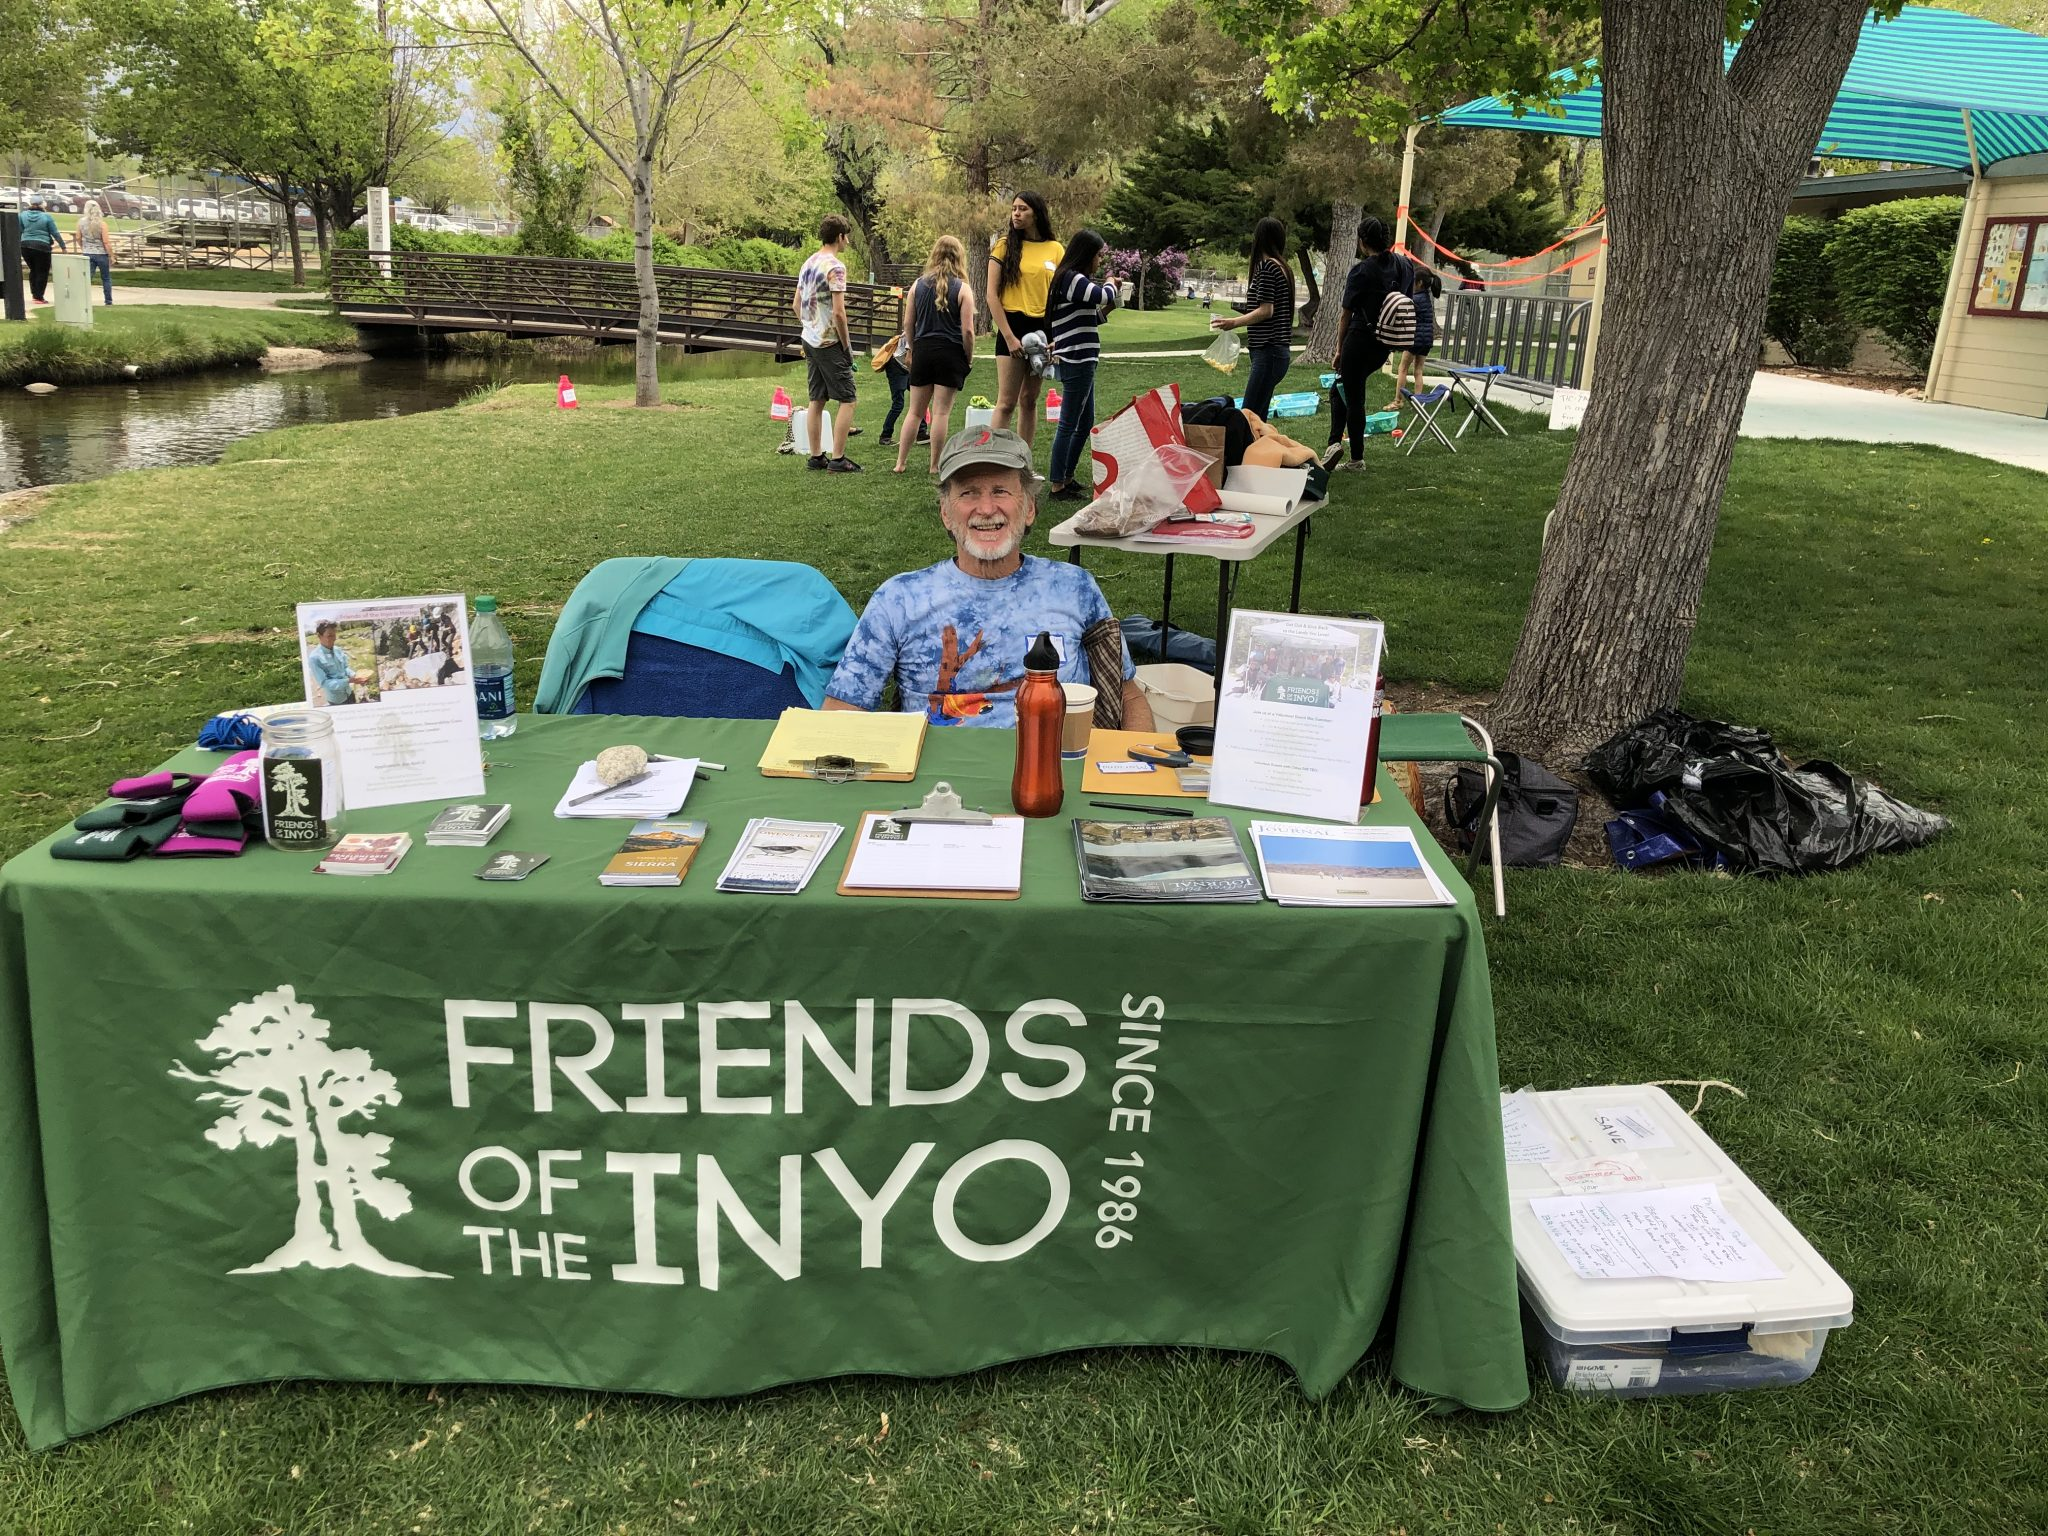 Friends of the Inyo Table at Bishop City park